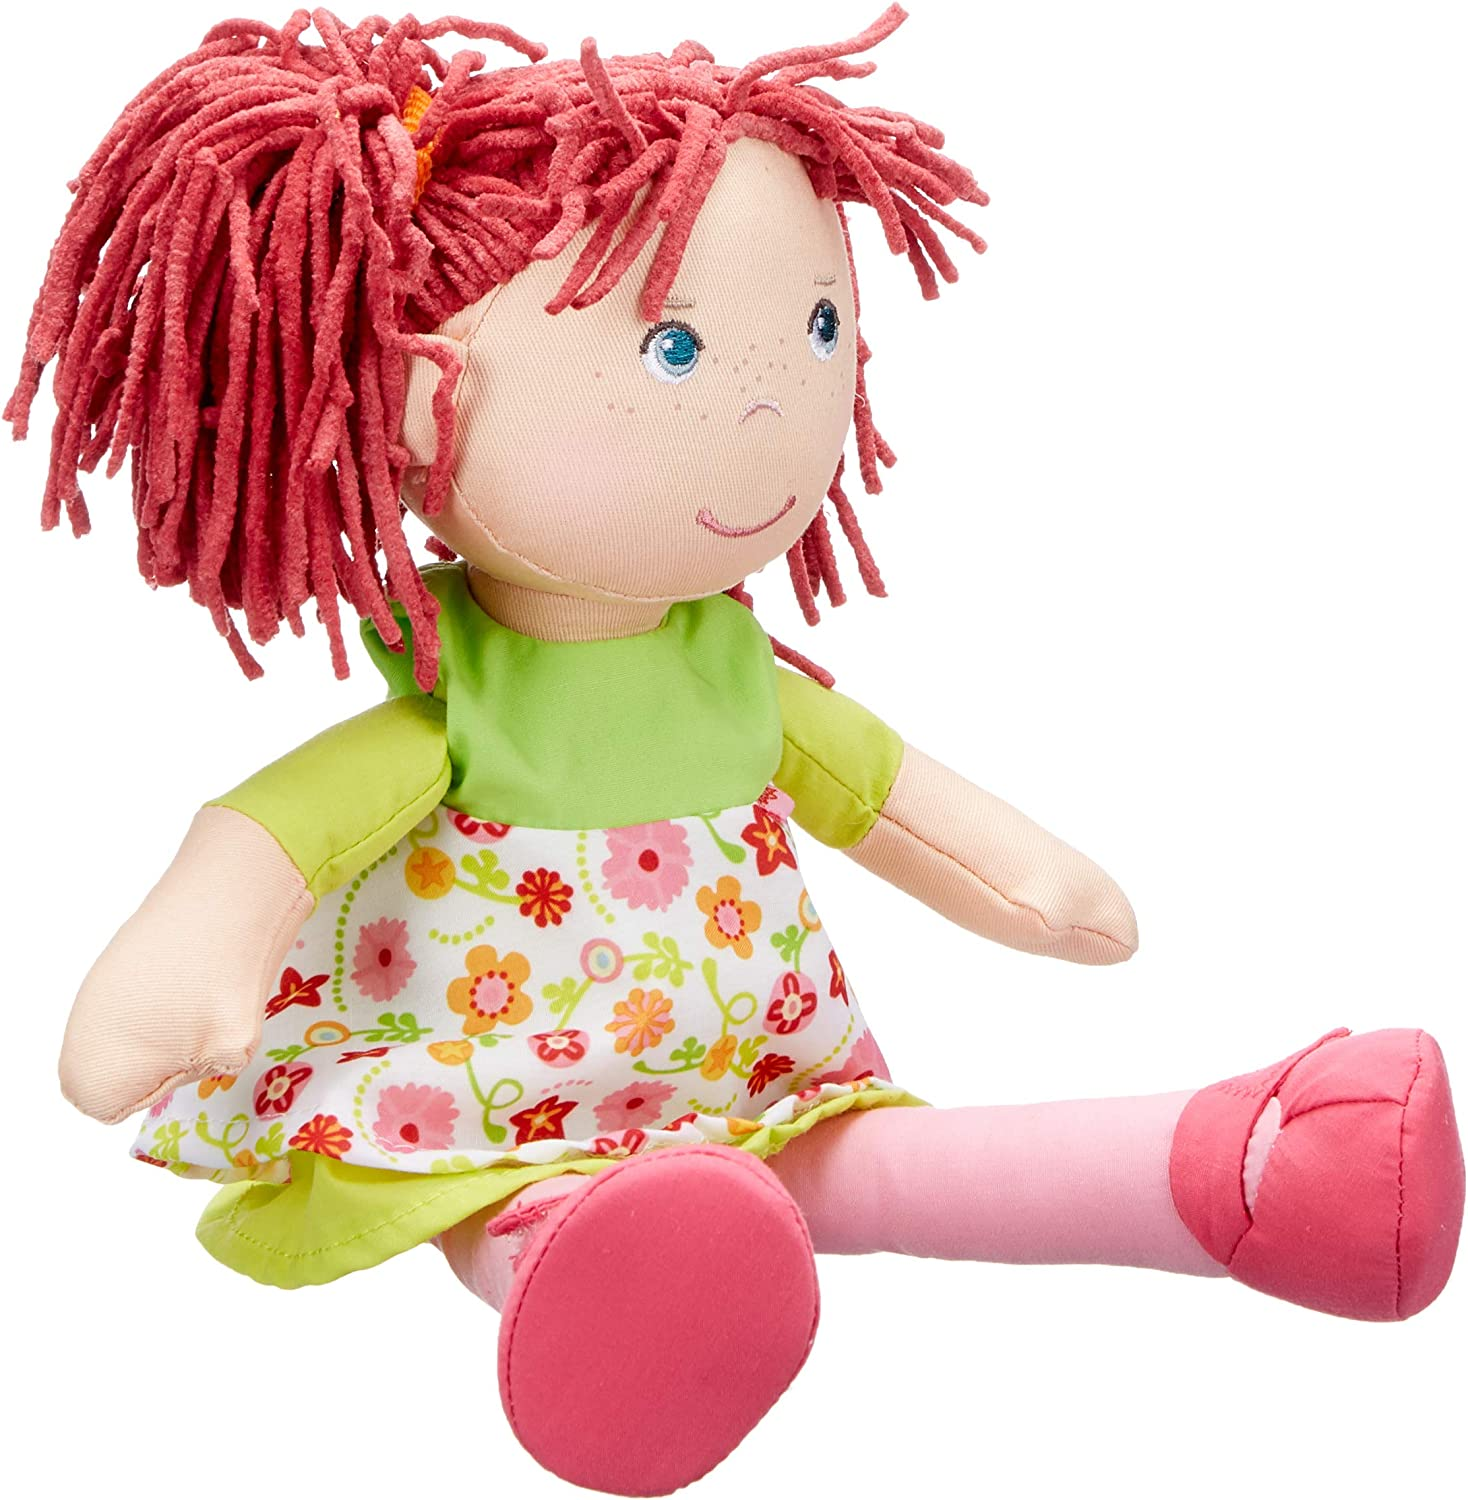 HABA Liese 12  Soft Doll with bluee Eyes and Red Pigtails